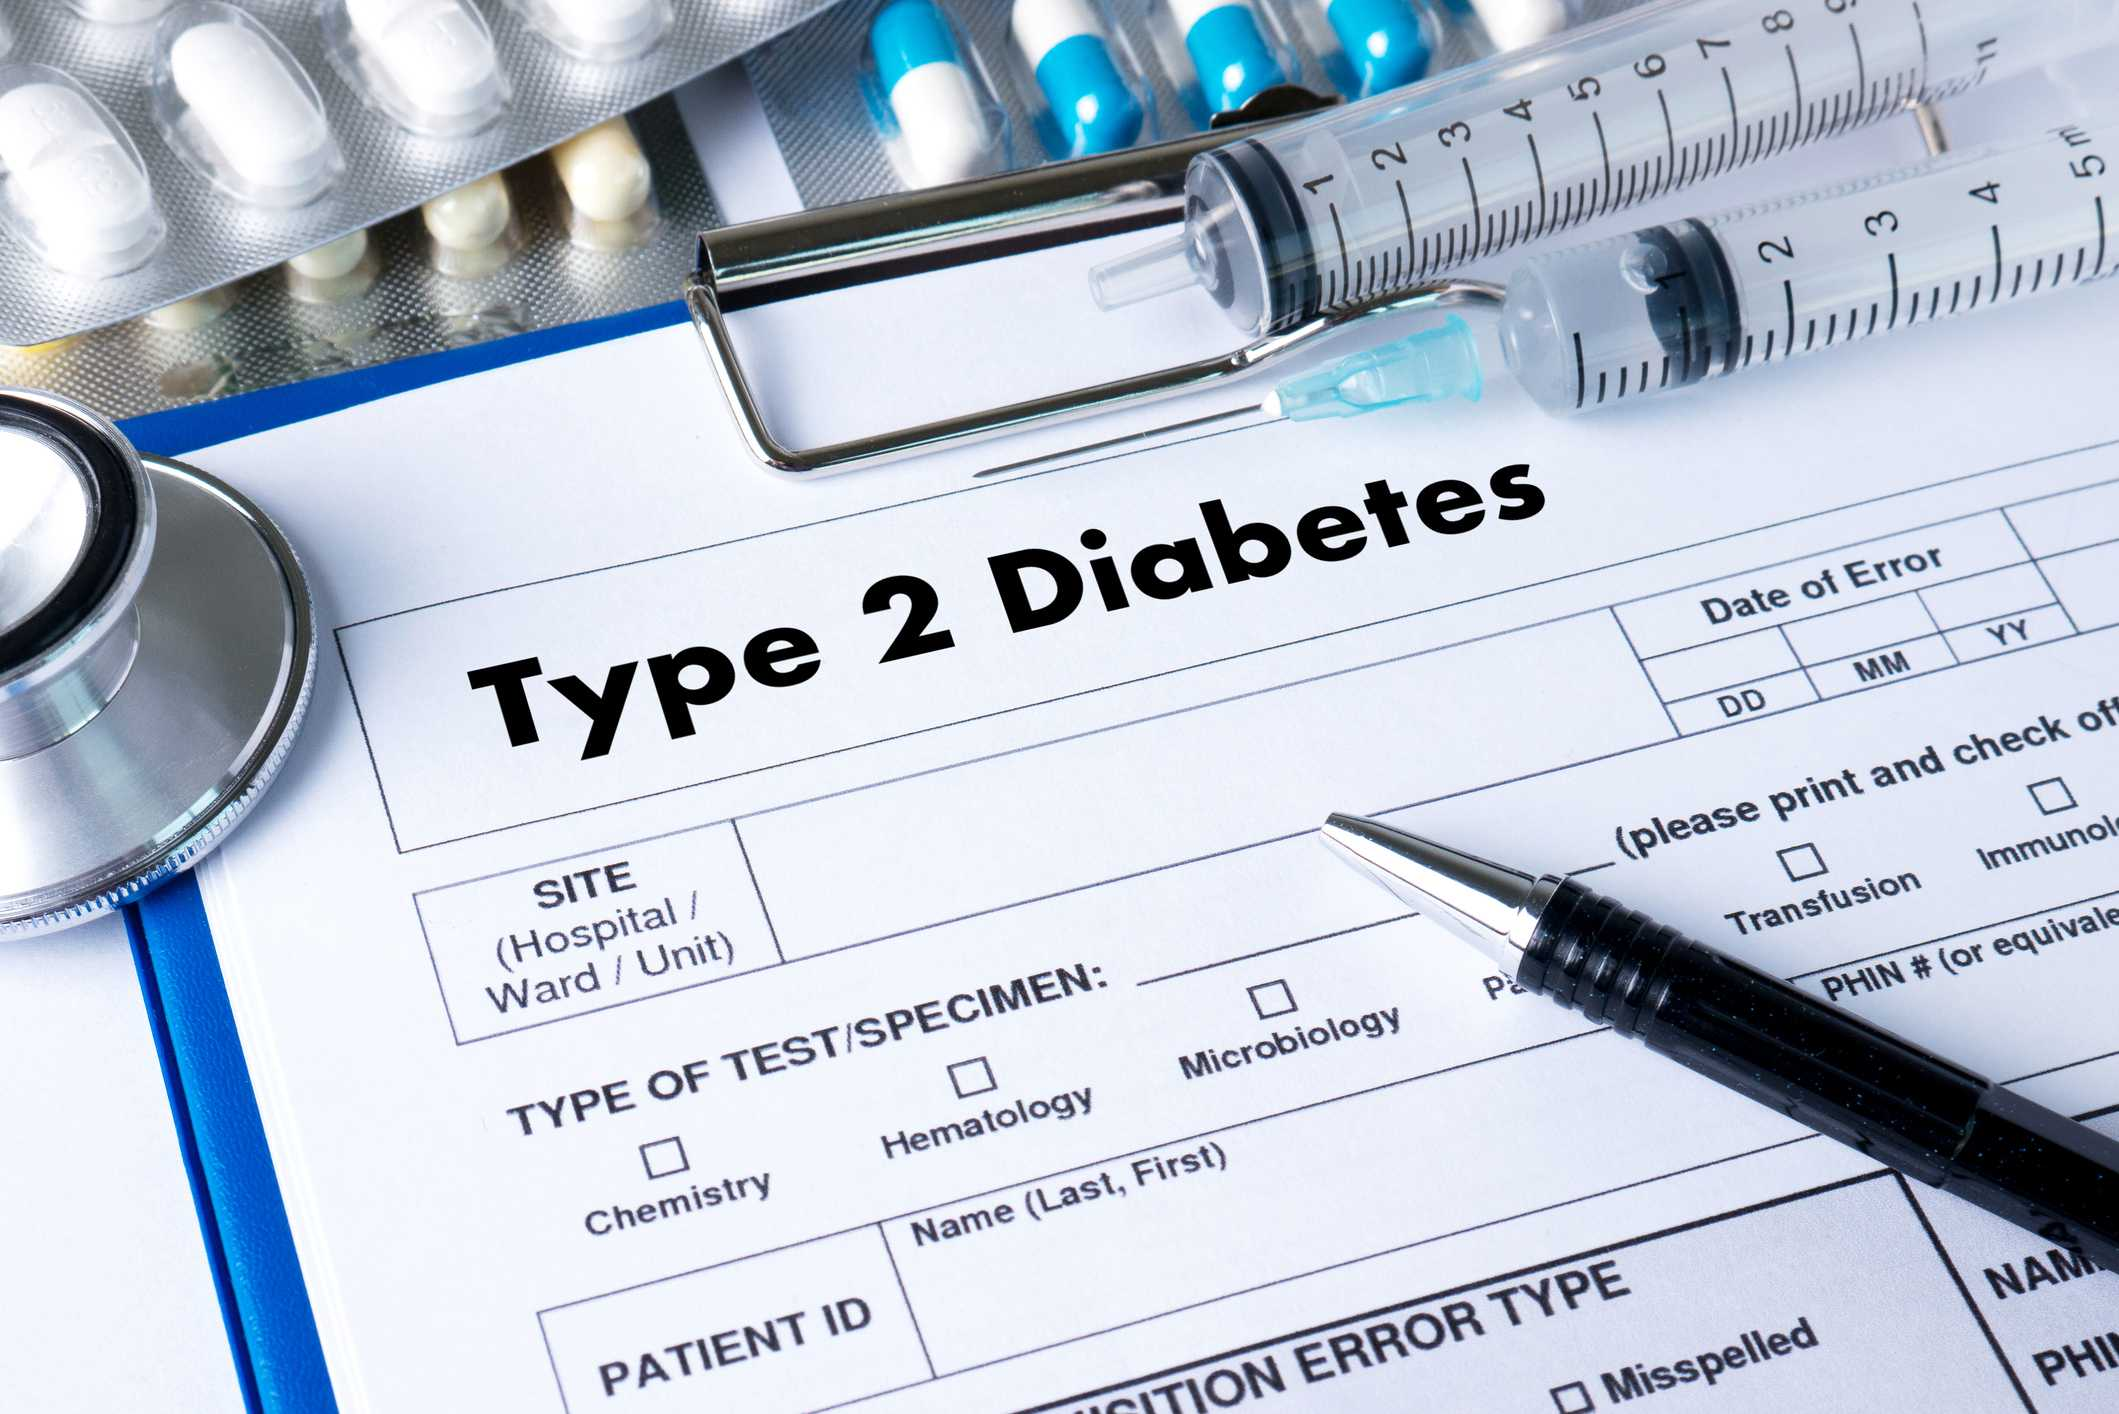 Type 2 Diabetes - 90% of People with Diabetes have Type 2